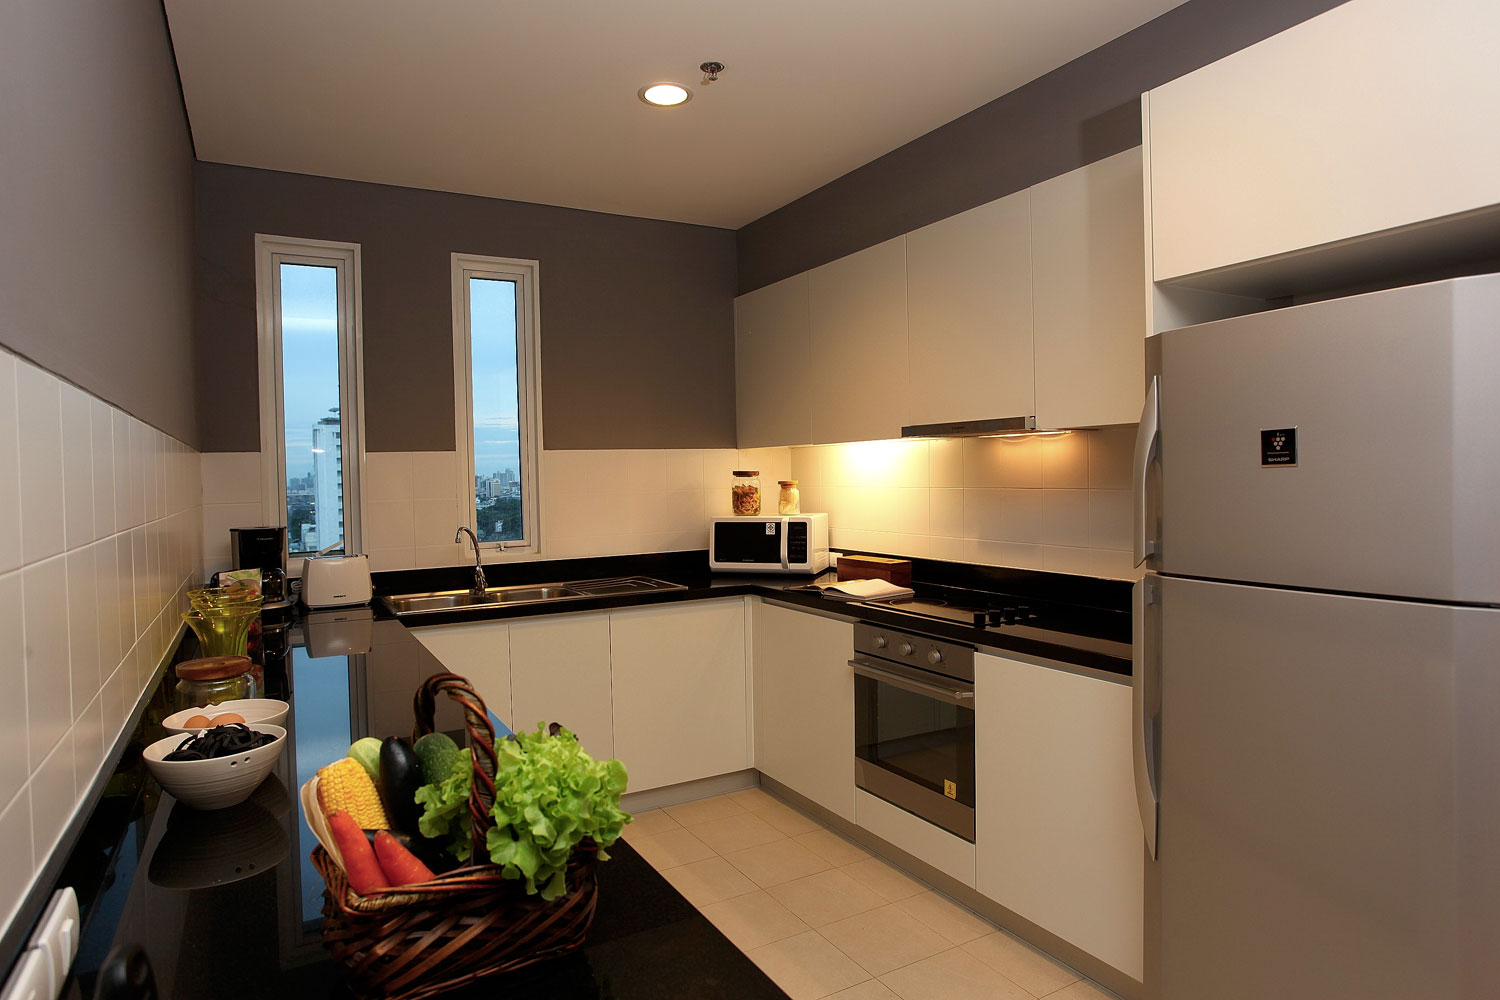 shama%20residence%20 %20kitchen